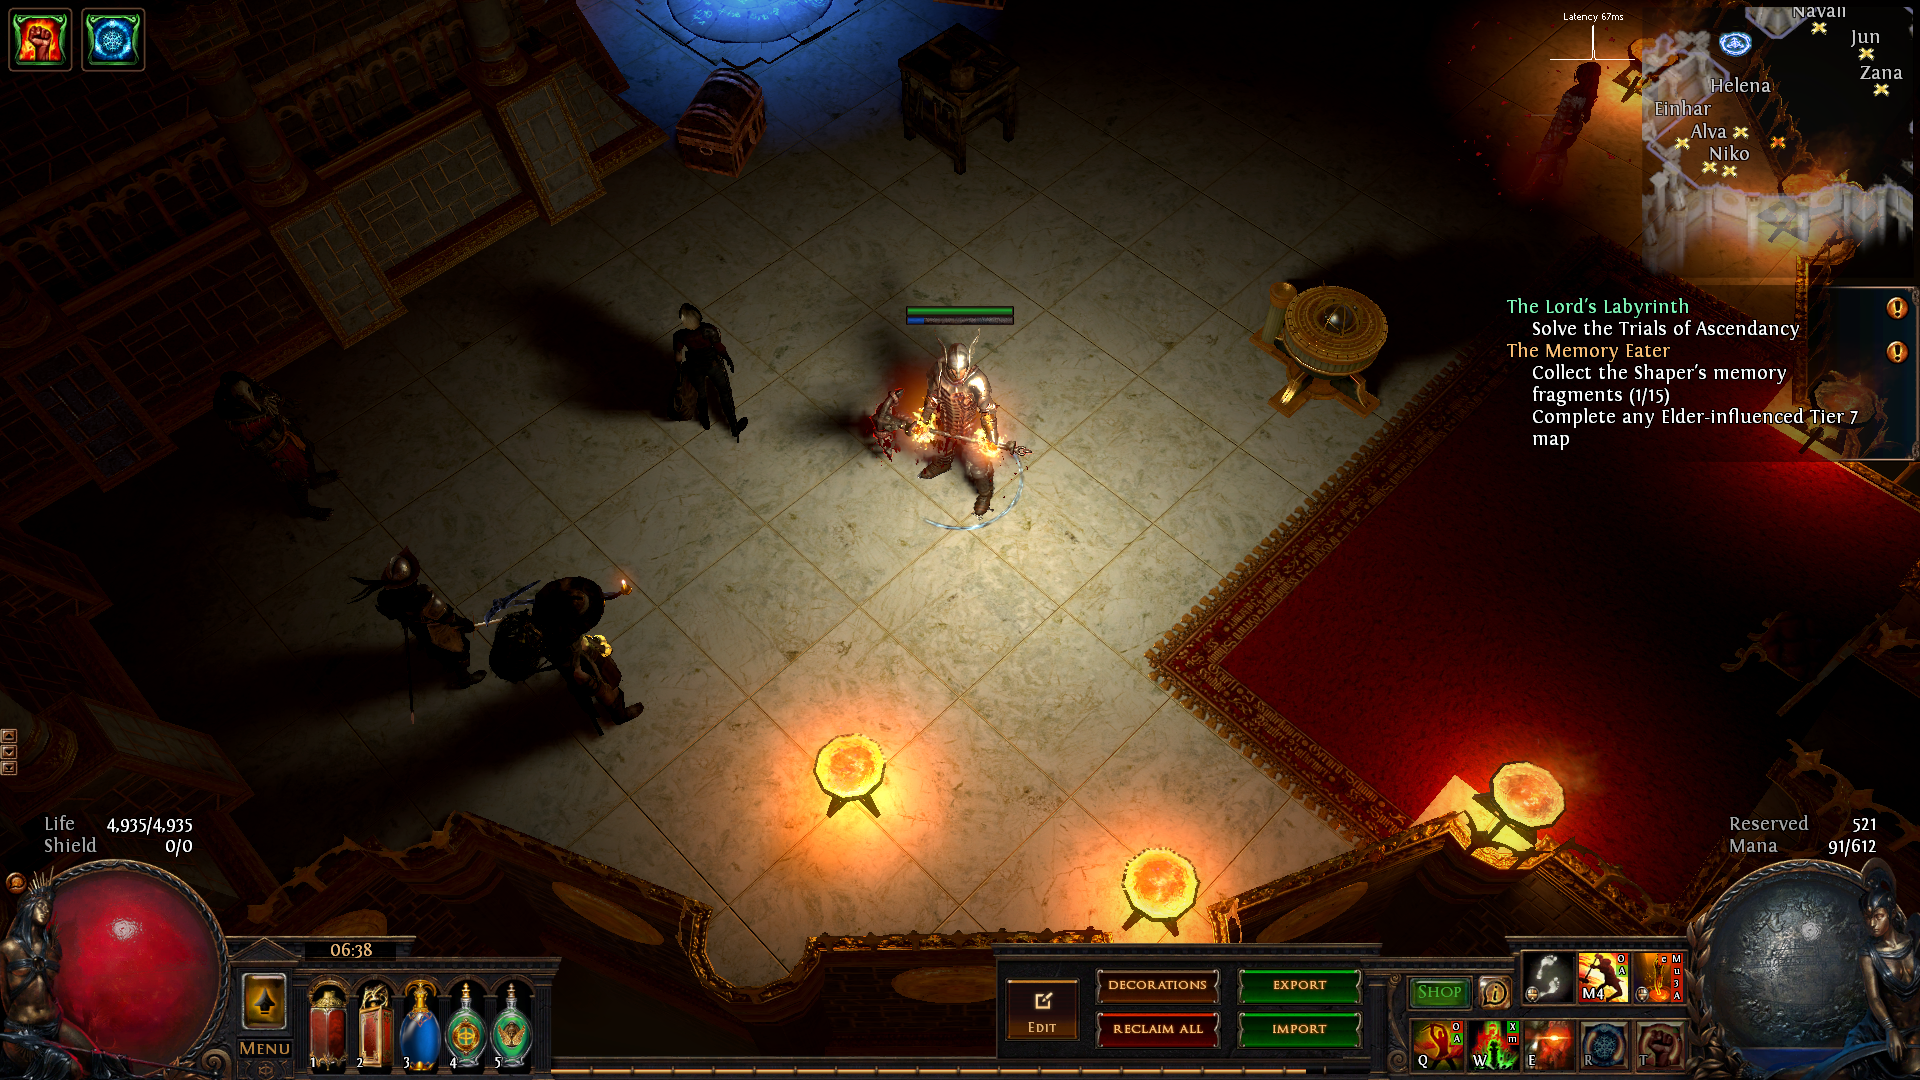 Path of Exile not rendering correctly · Issue #75 · GPUOpen